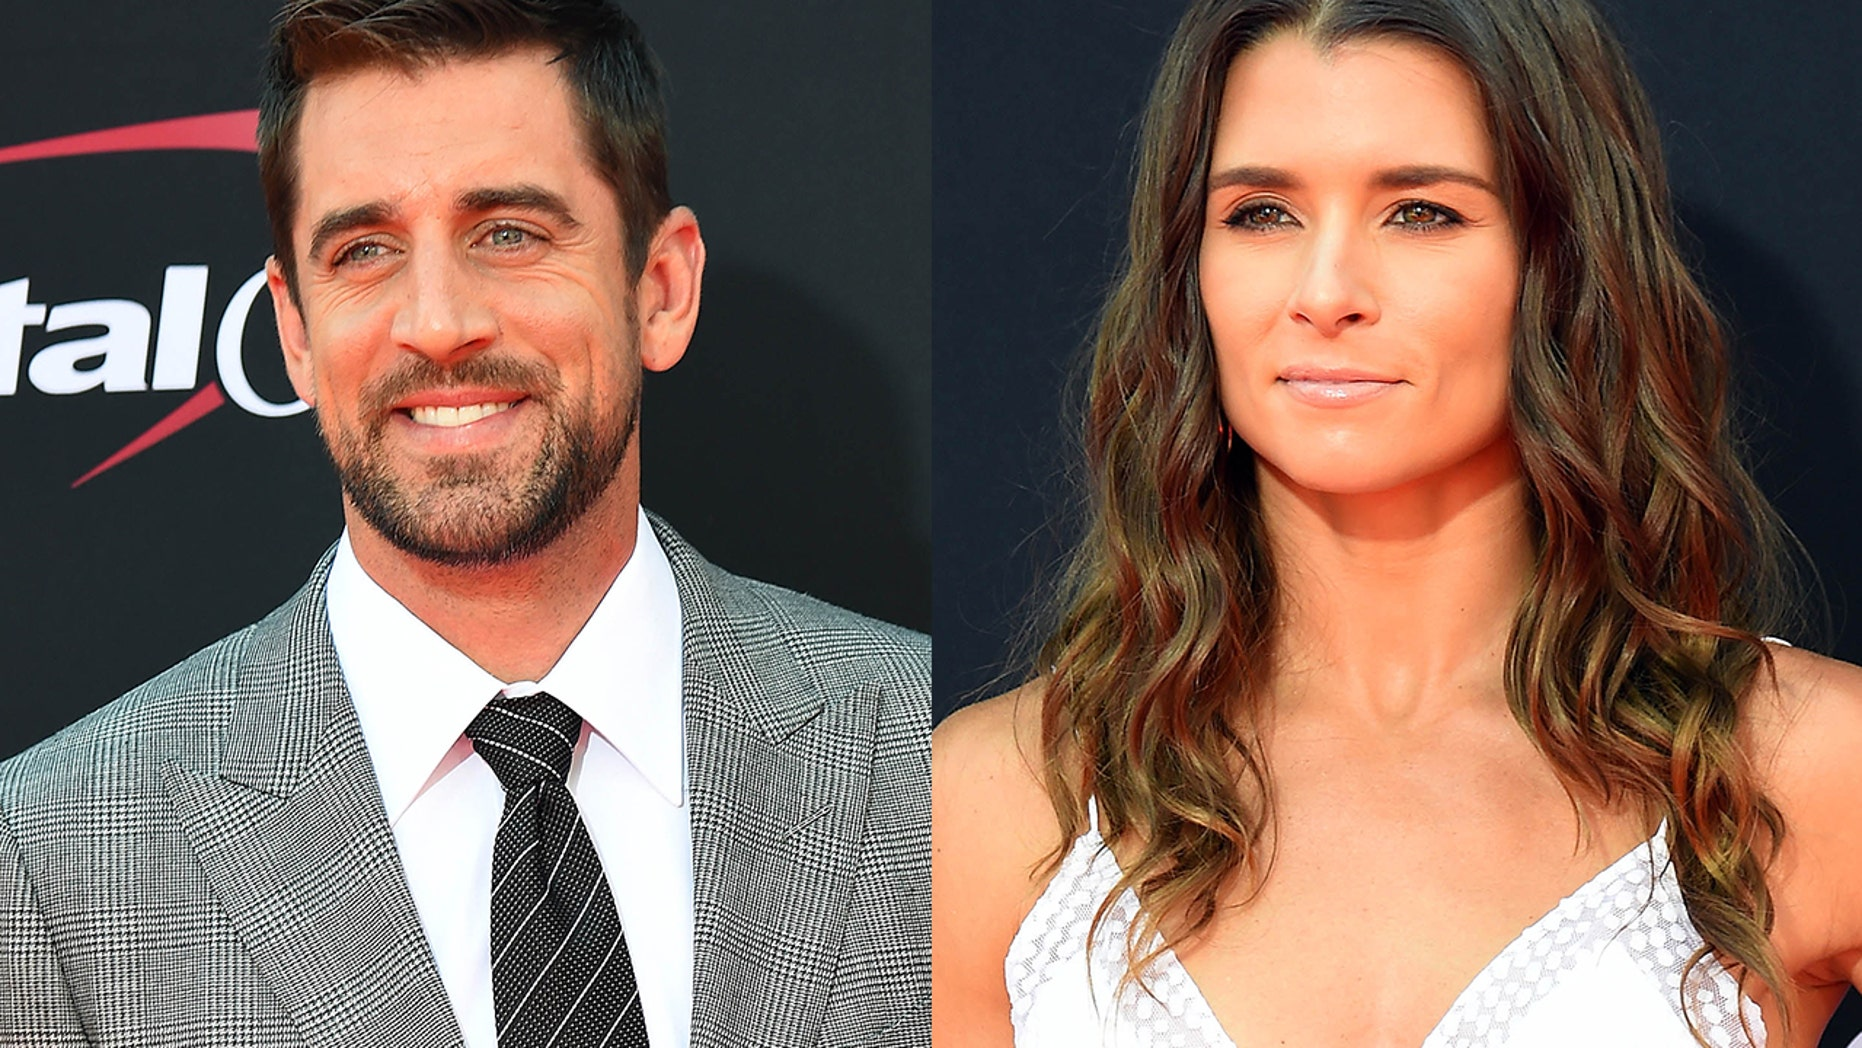 Aaron Roders (left) and Danica Patrick) are reportedly dating.